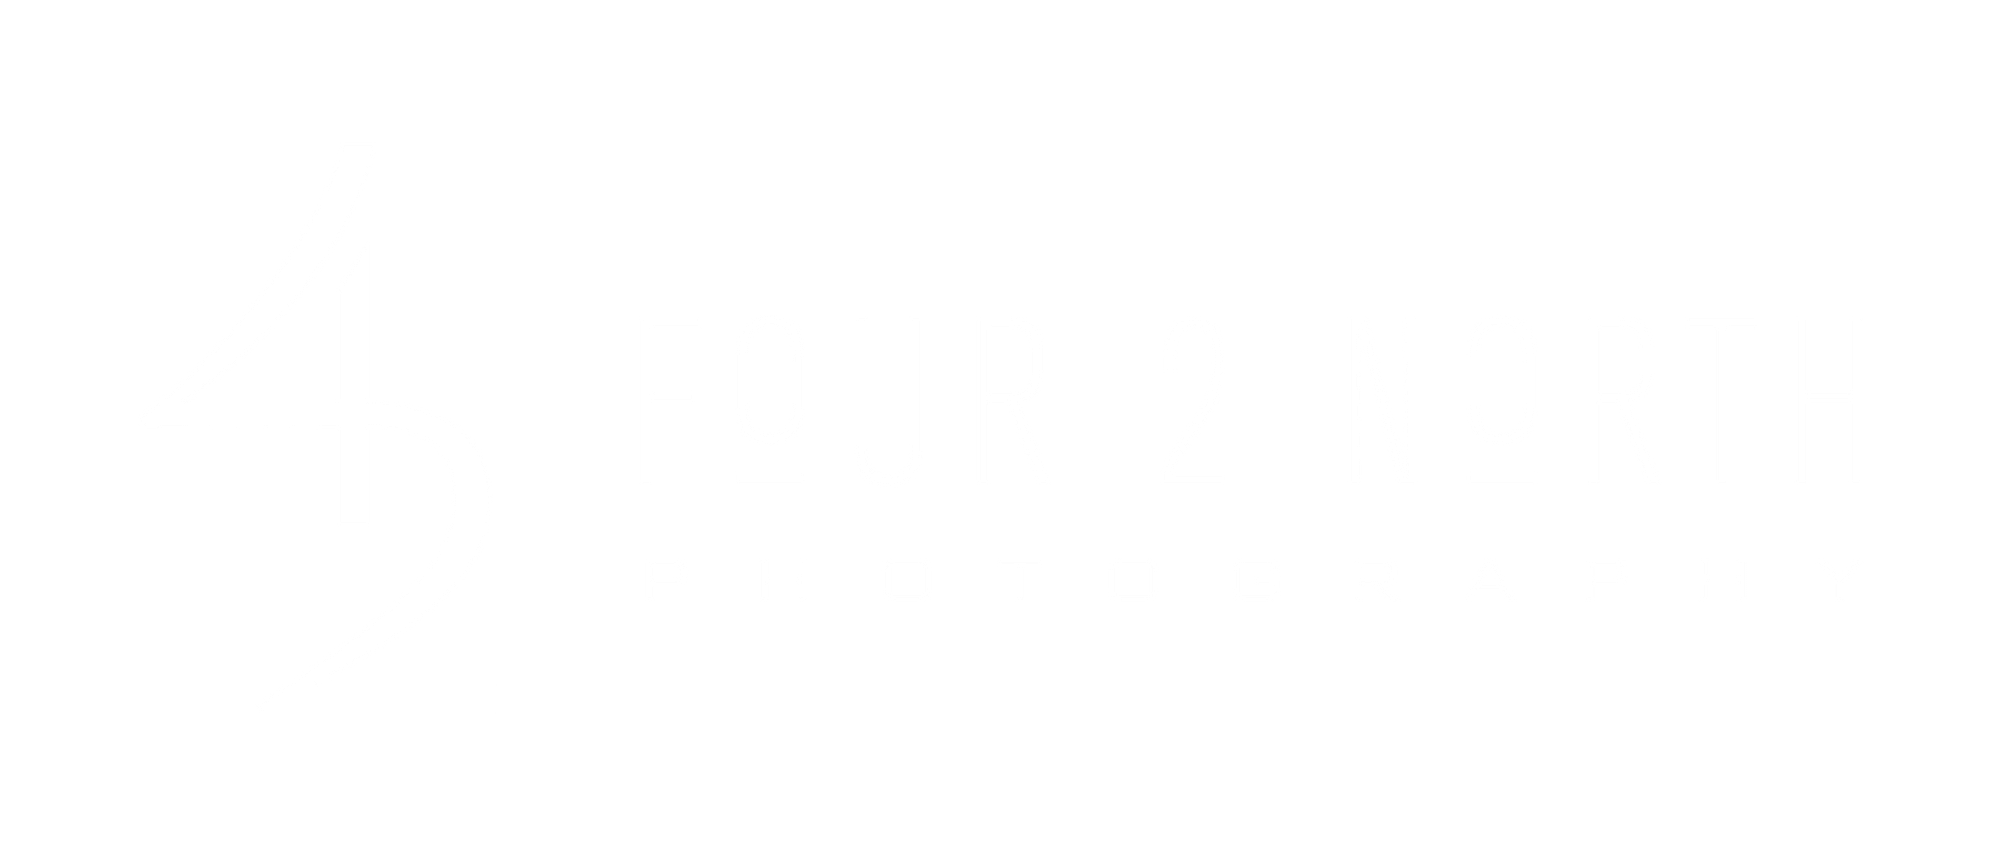 Four 2 North Photography site logo - 001